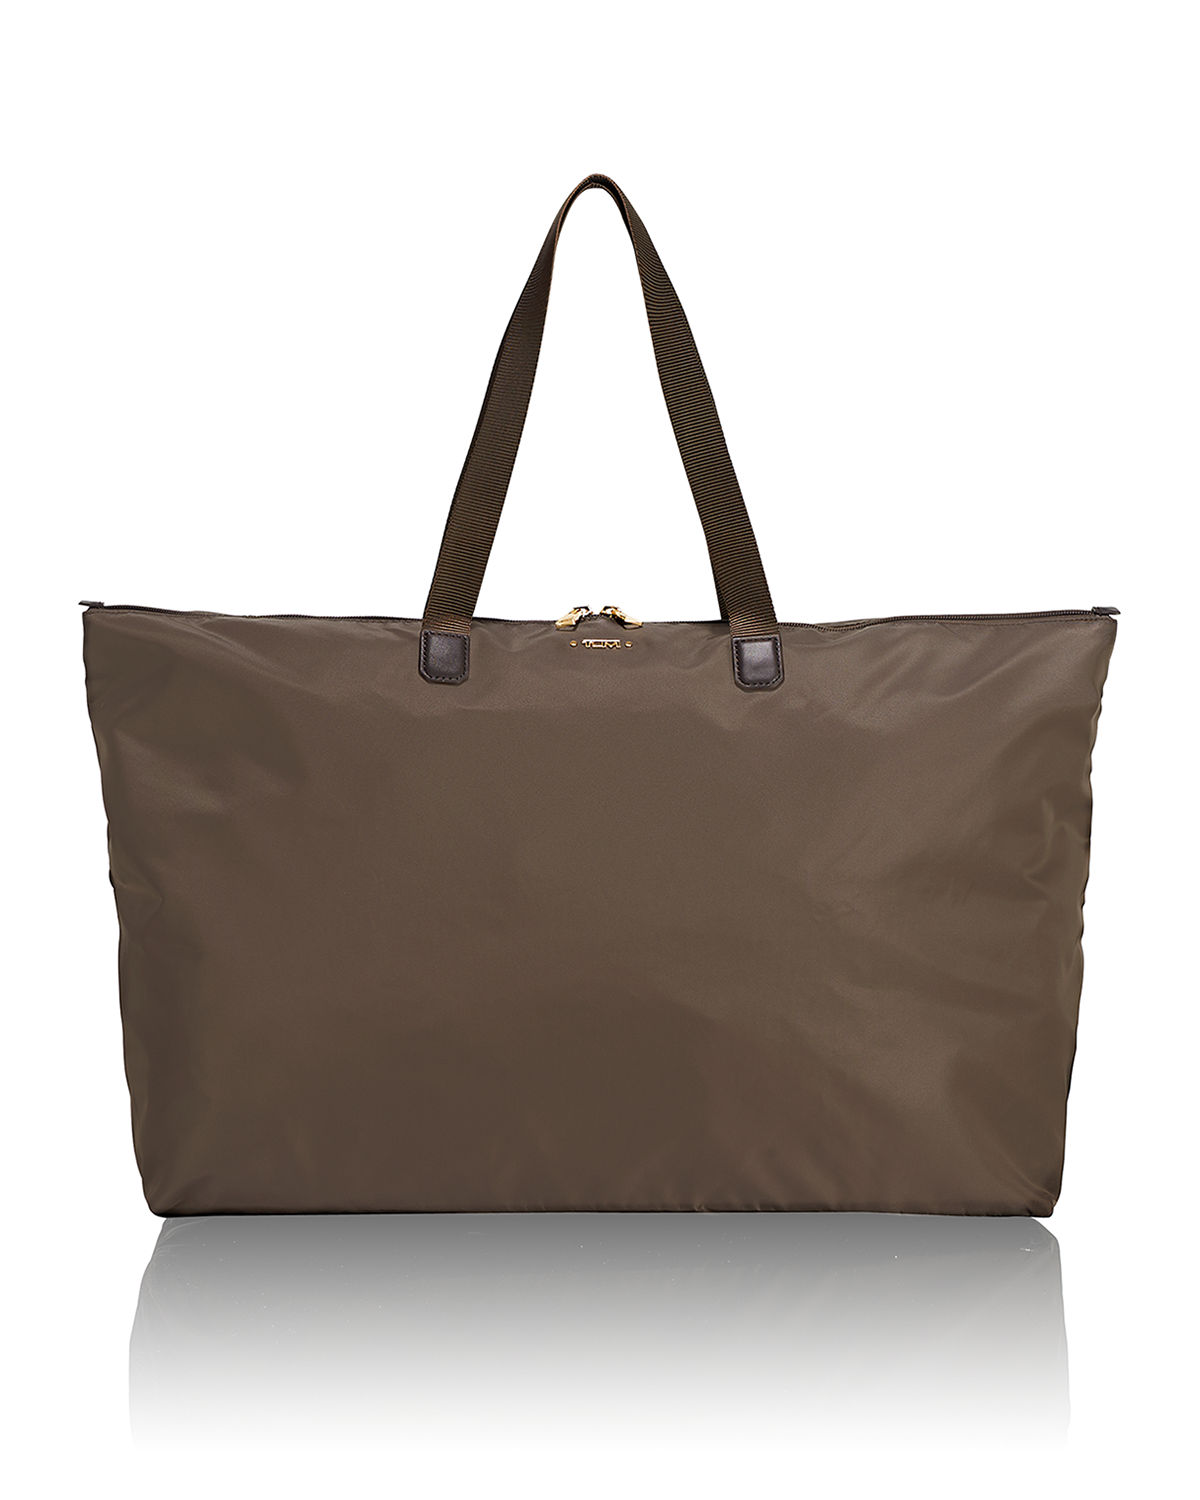 Brown Just In Case tote, $79 at Neiman Marcus